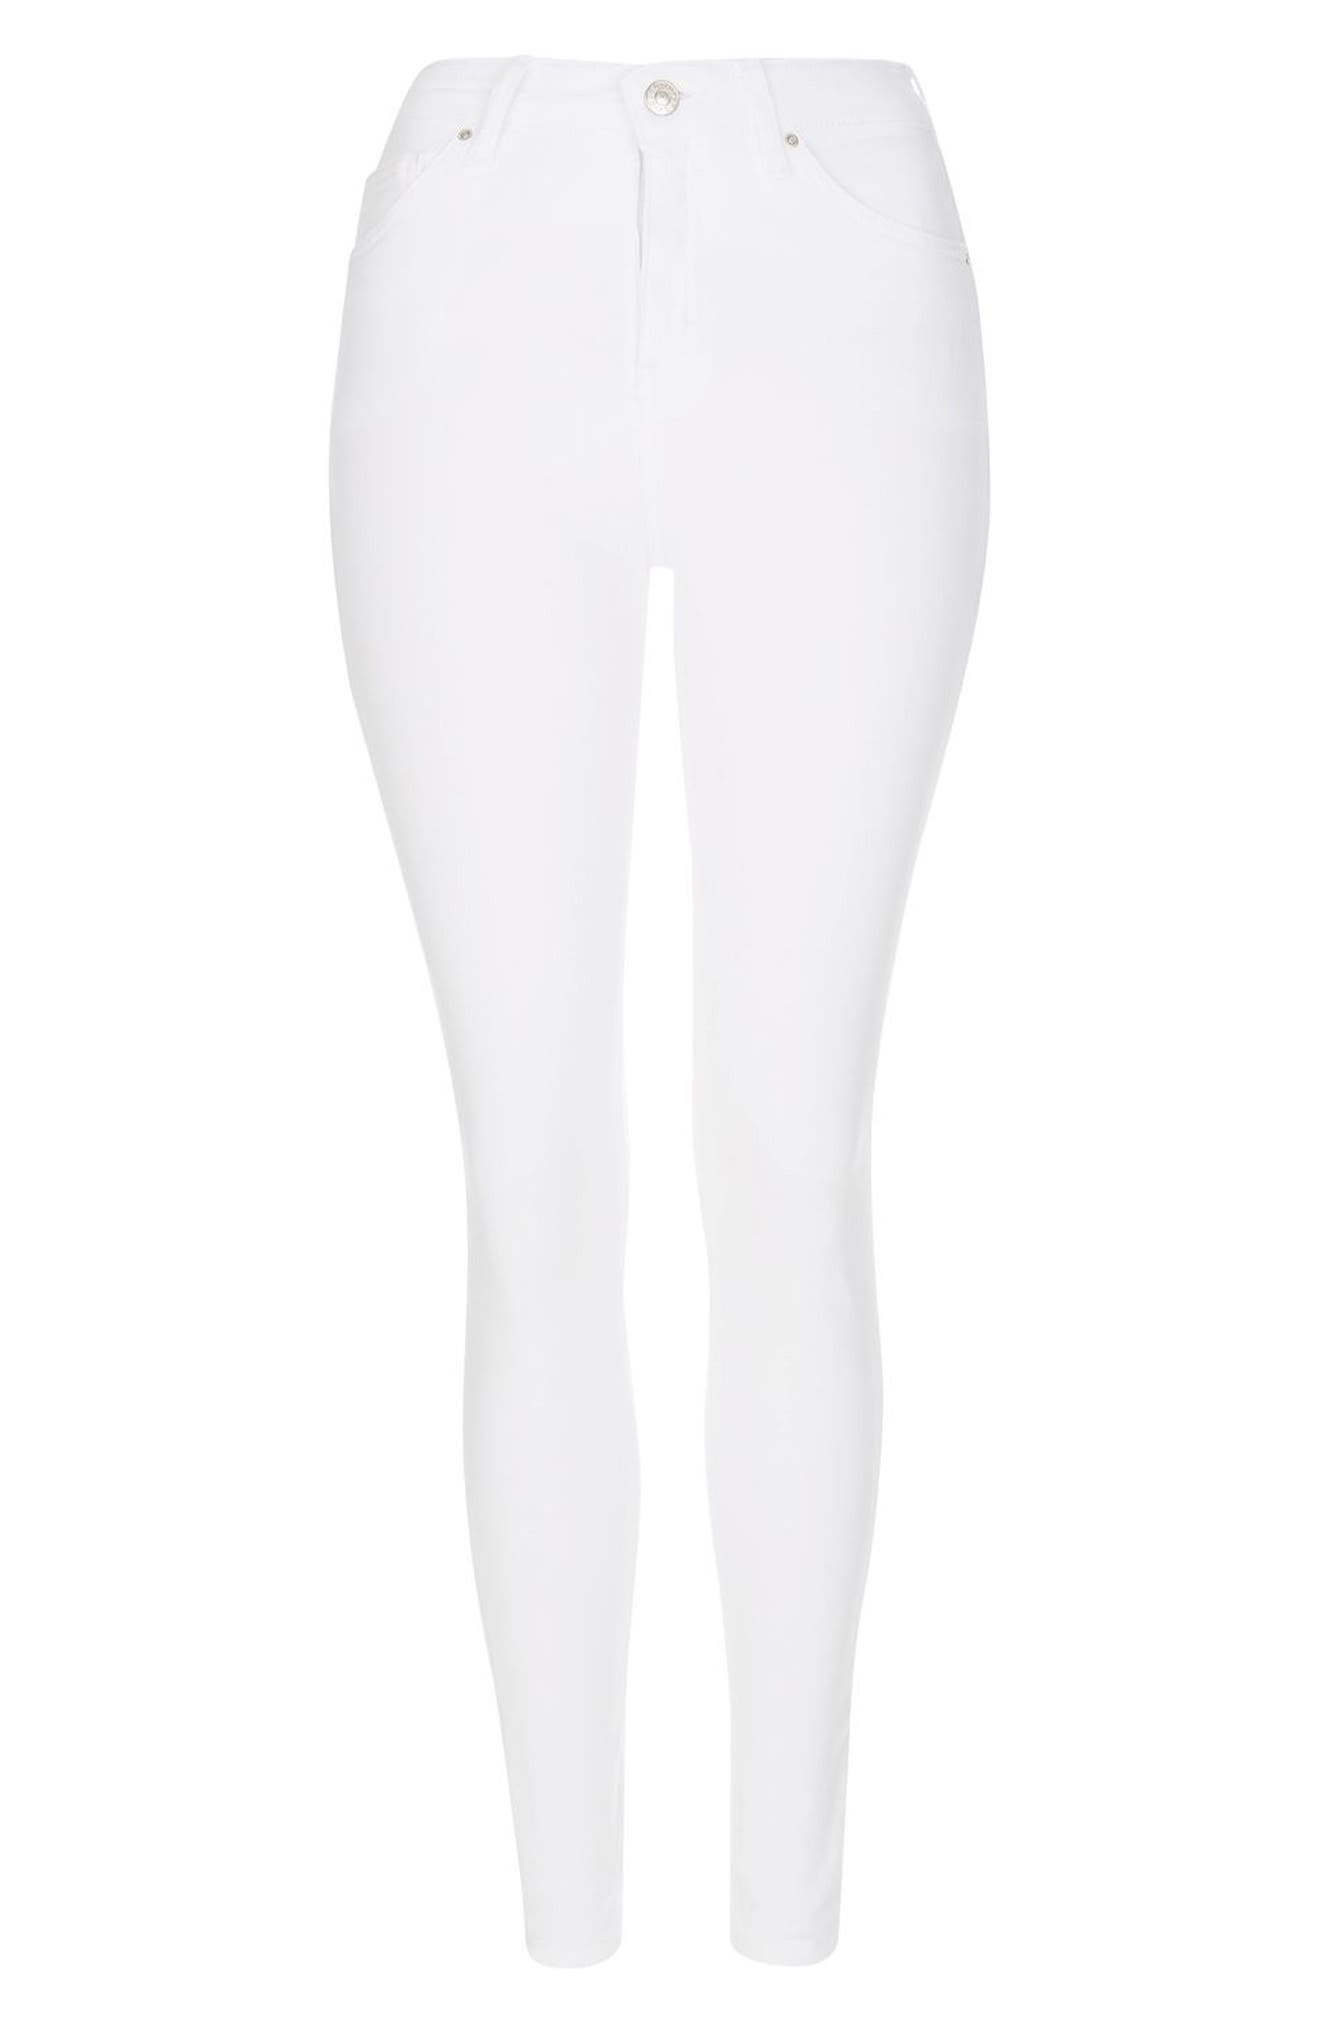 TOPSHOP, Jamie High Waist Ankle Skinny Jeans, Alternate thumbnail 4, color, WHITE